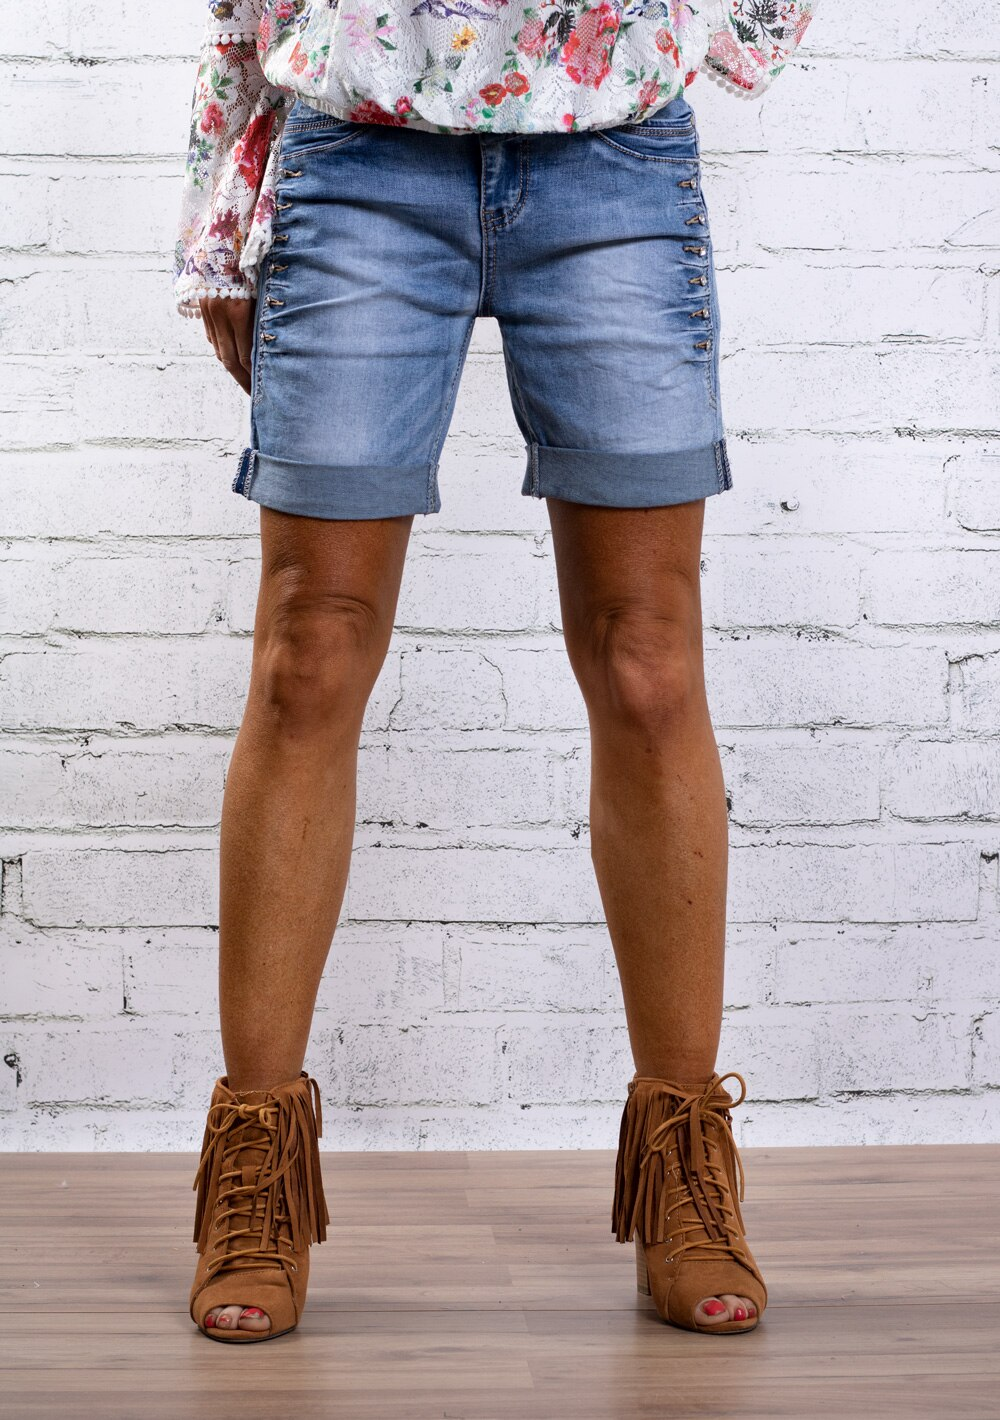 Jeansshorts-S8017---Bling---Denim-fram